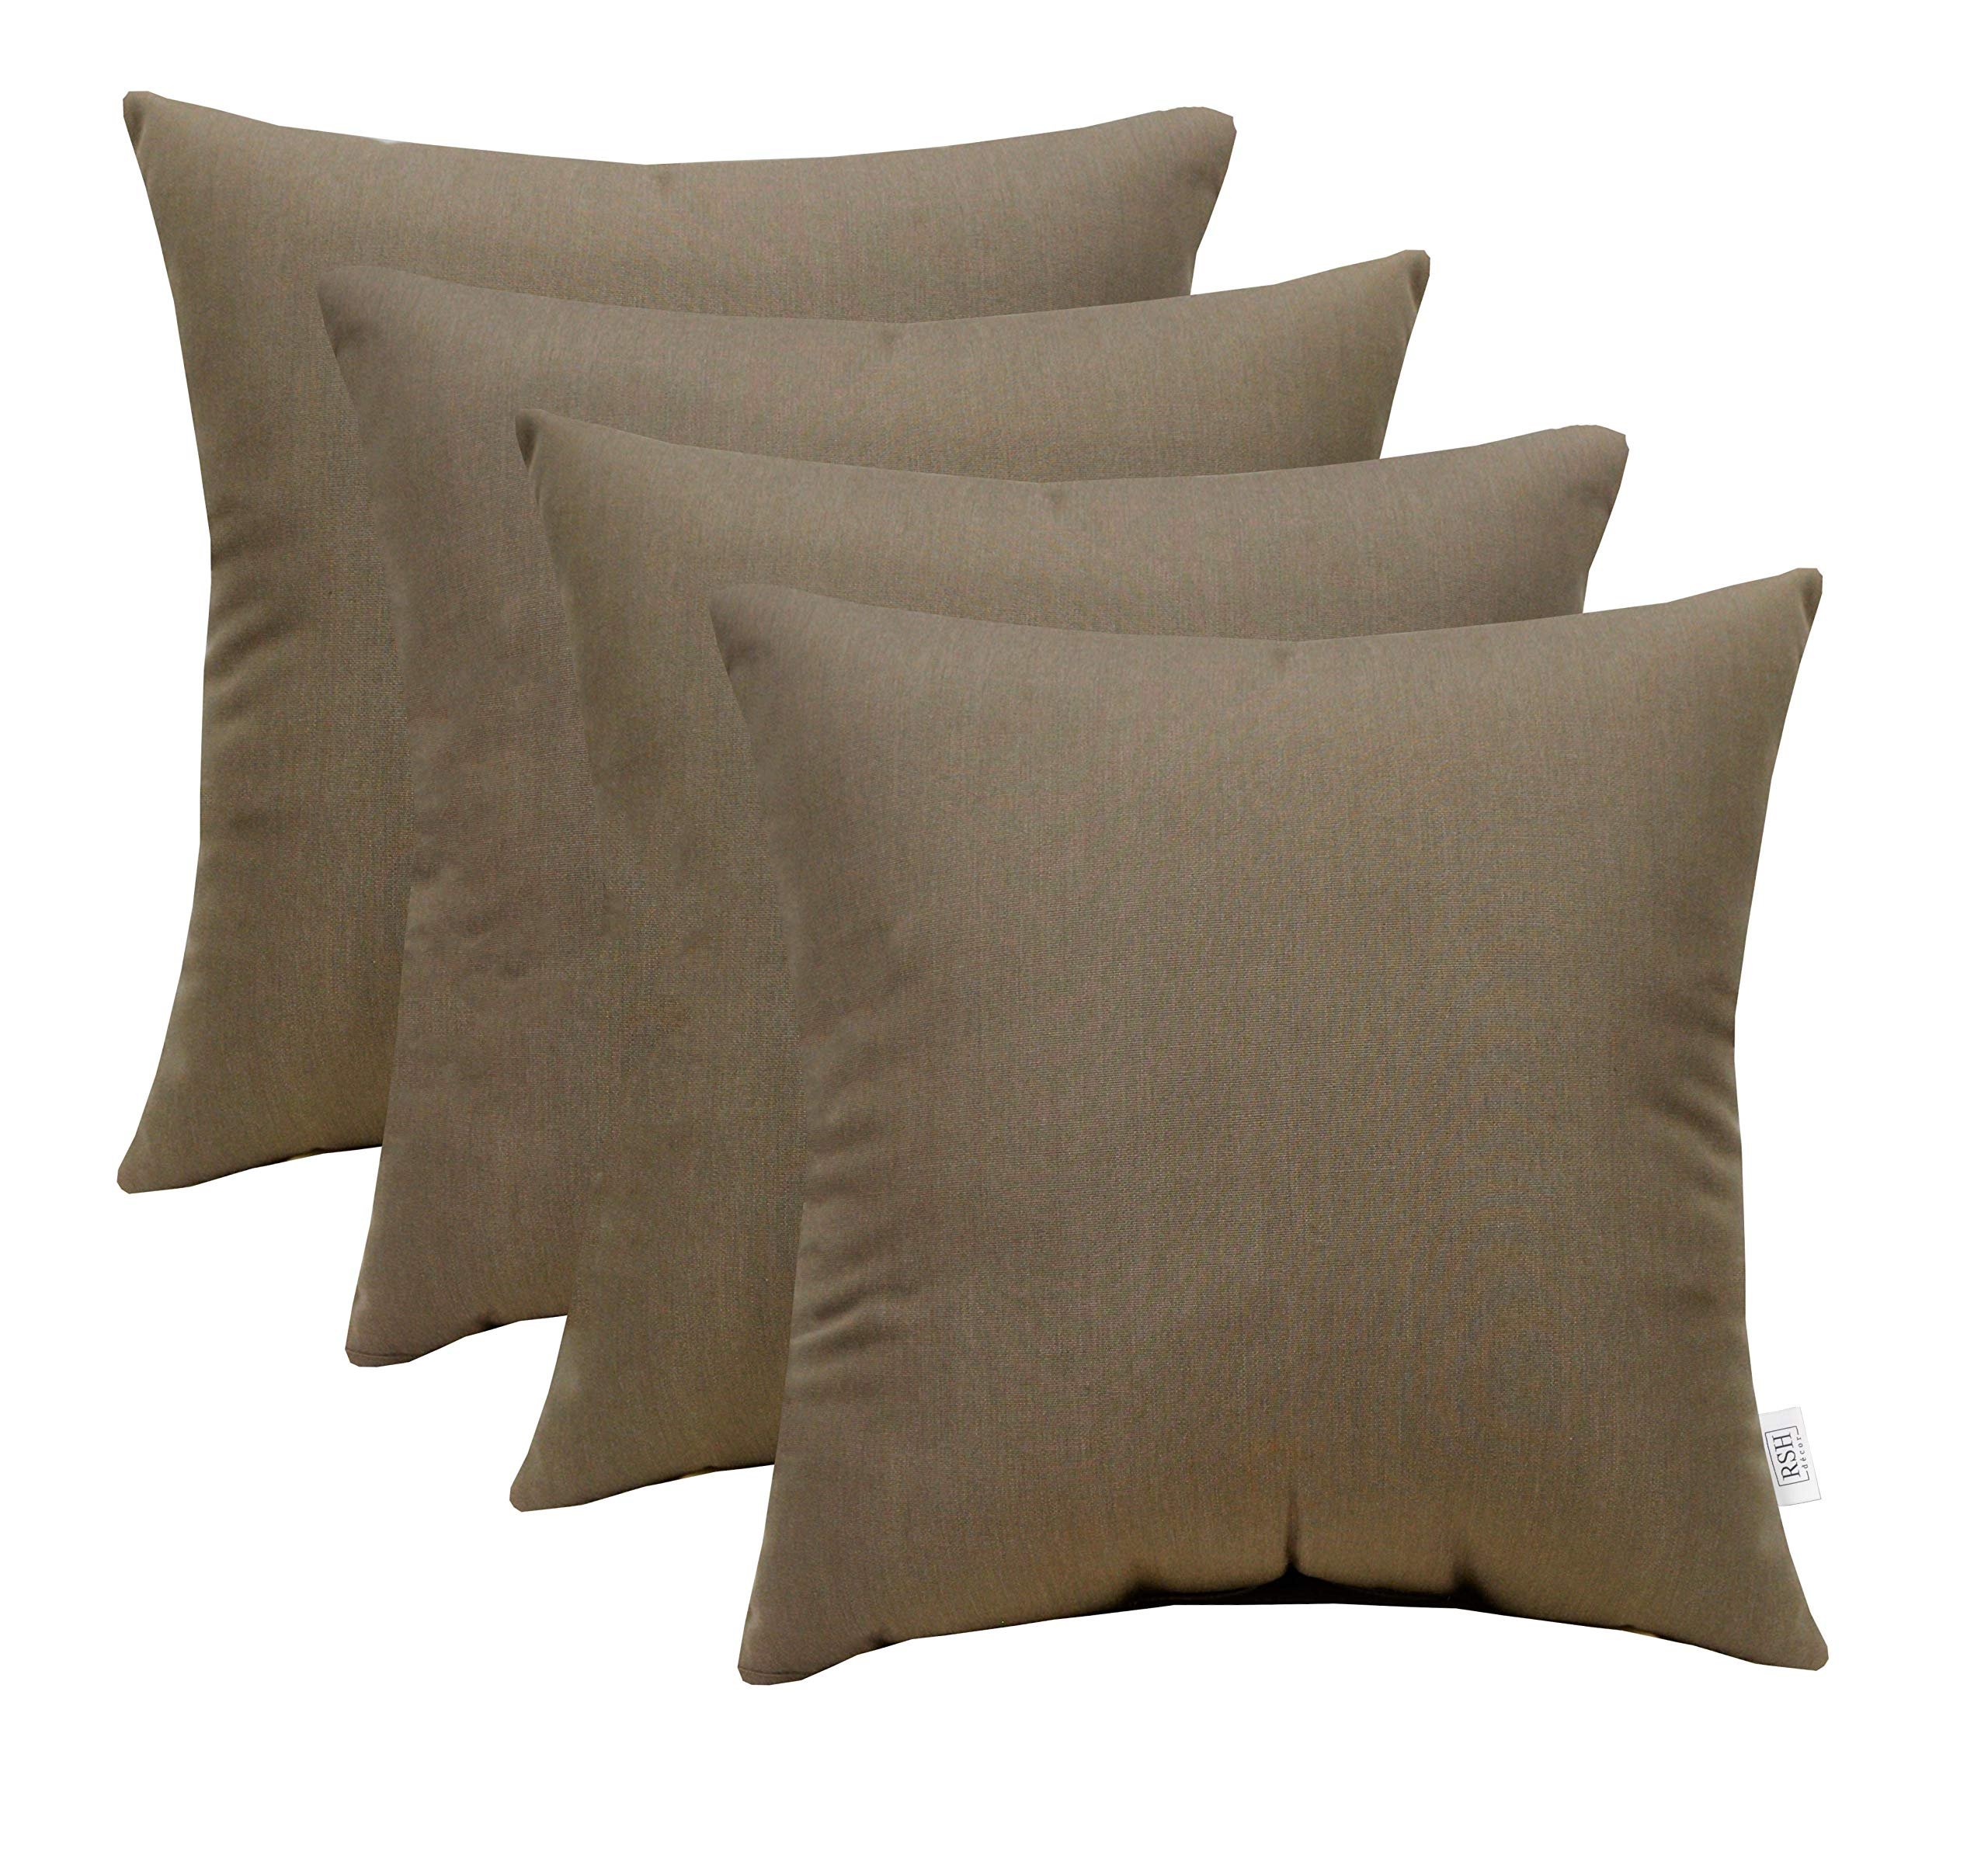 RSH Décor Set of 4 Indoor/Outdoor Square Throw Pillows Sunbrella Canvas Taupe (17'' x 17'')